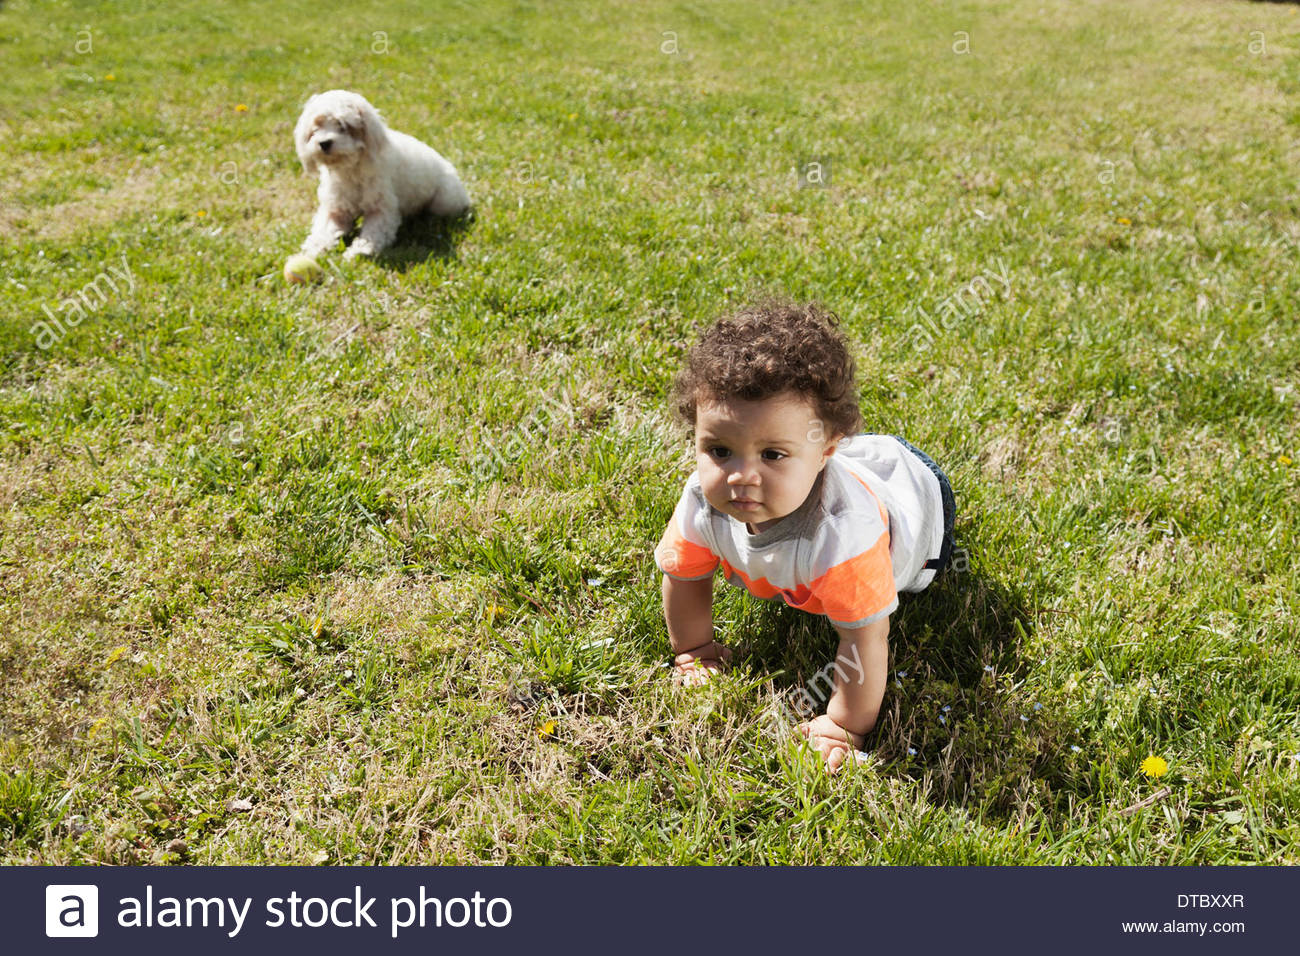 Child crawling on grass, dog in background Stock Photo